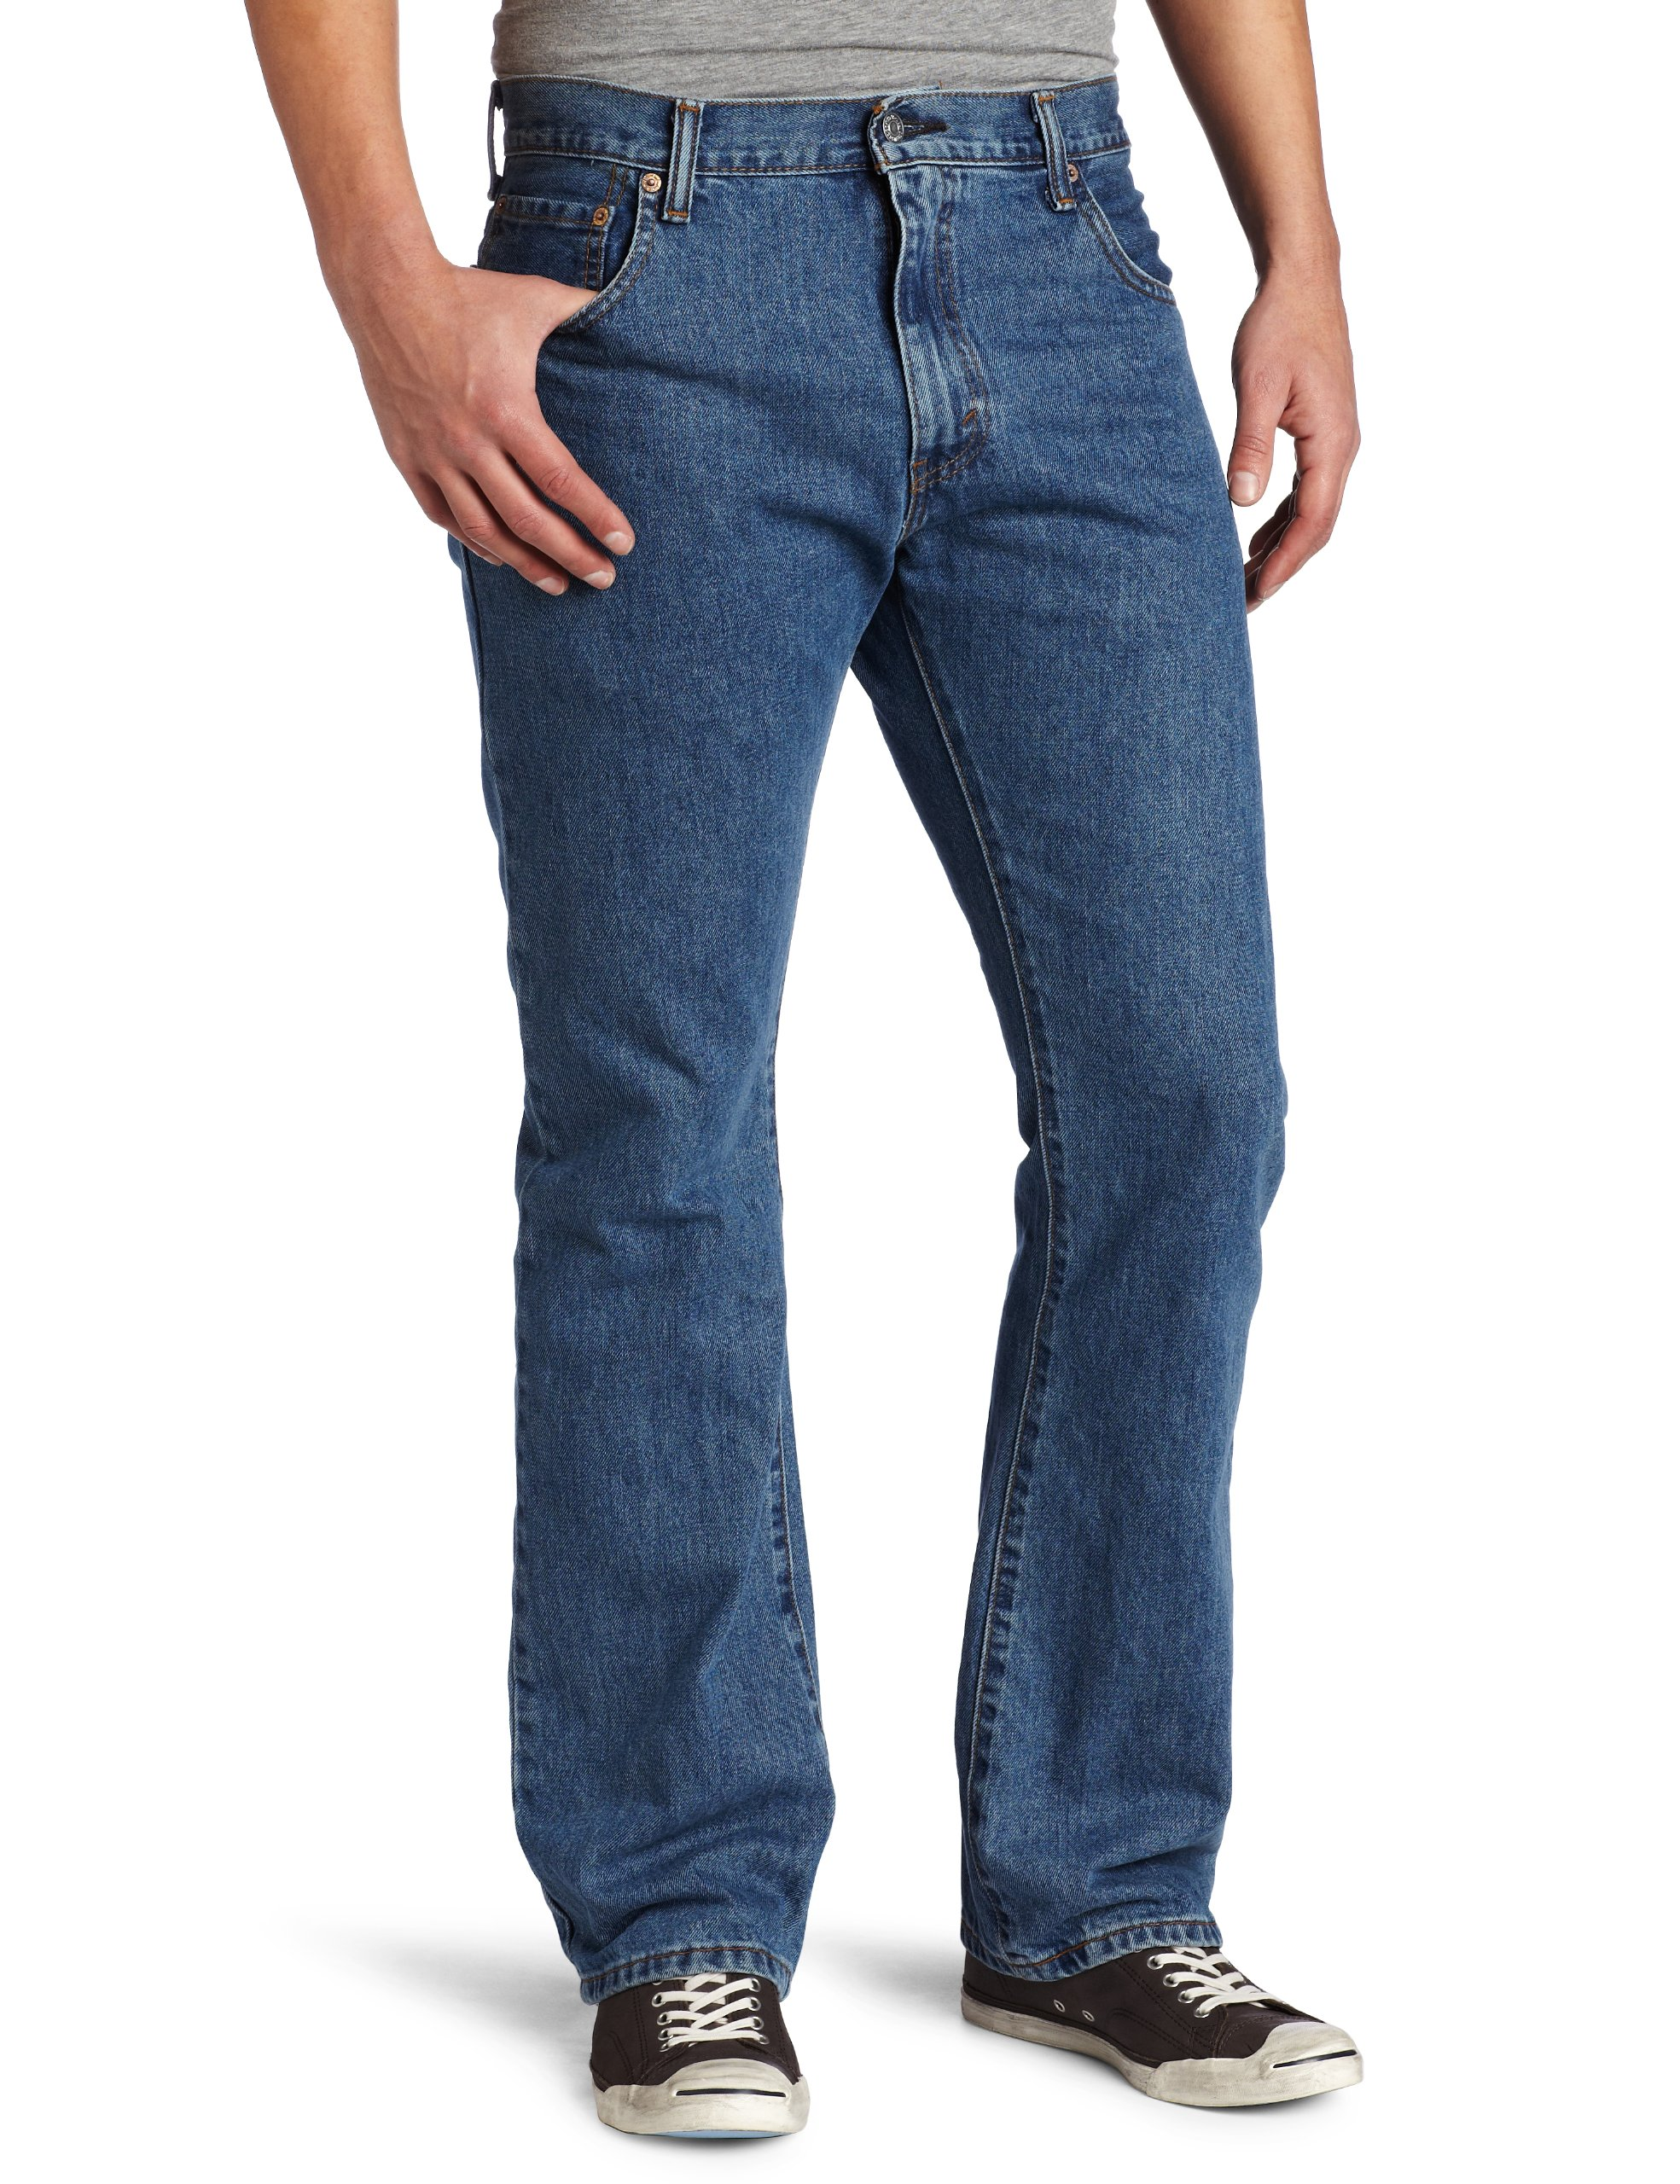 Levi's Men's 517 Boot Cut Jean, Medium Stonewash, 34x32 by Levi's